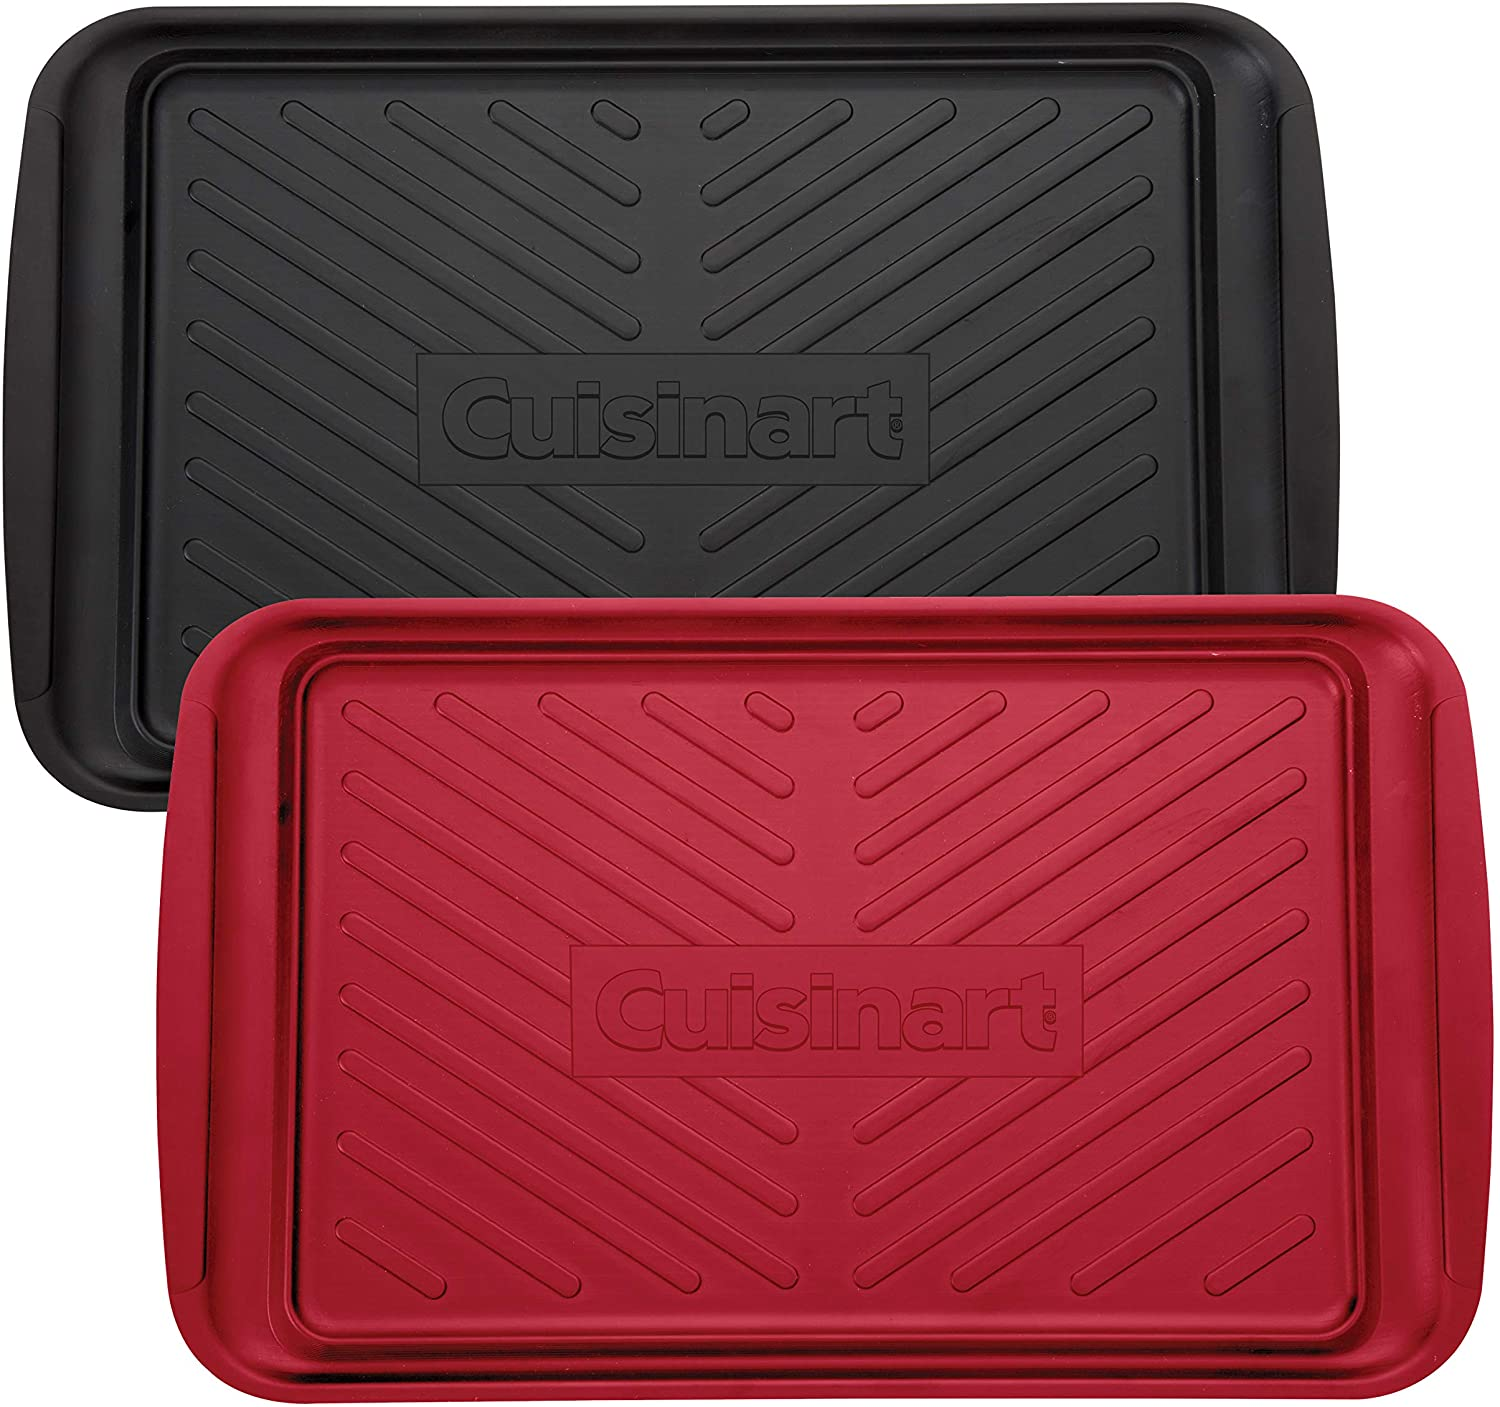 Cuisinart CPK-200 Grilling Prep and Serve Trays